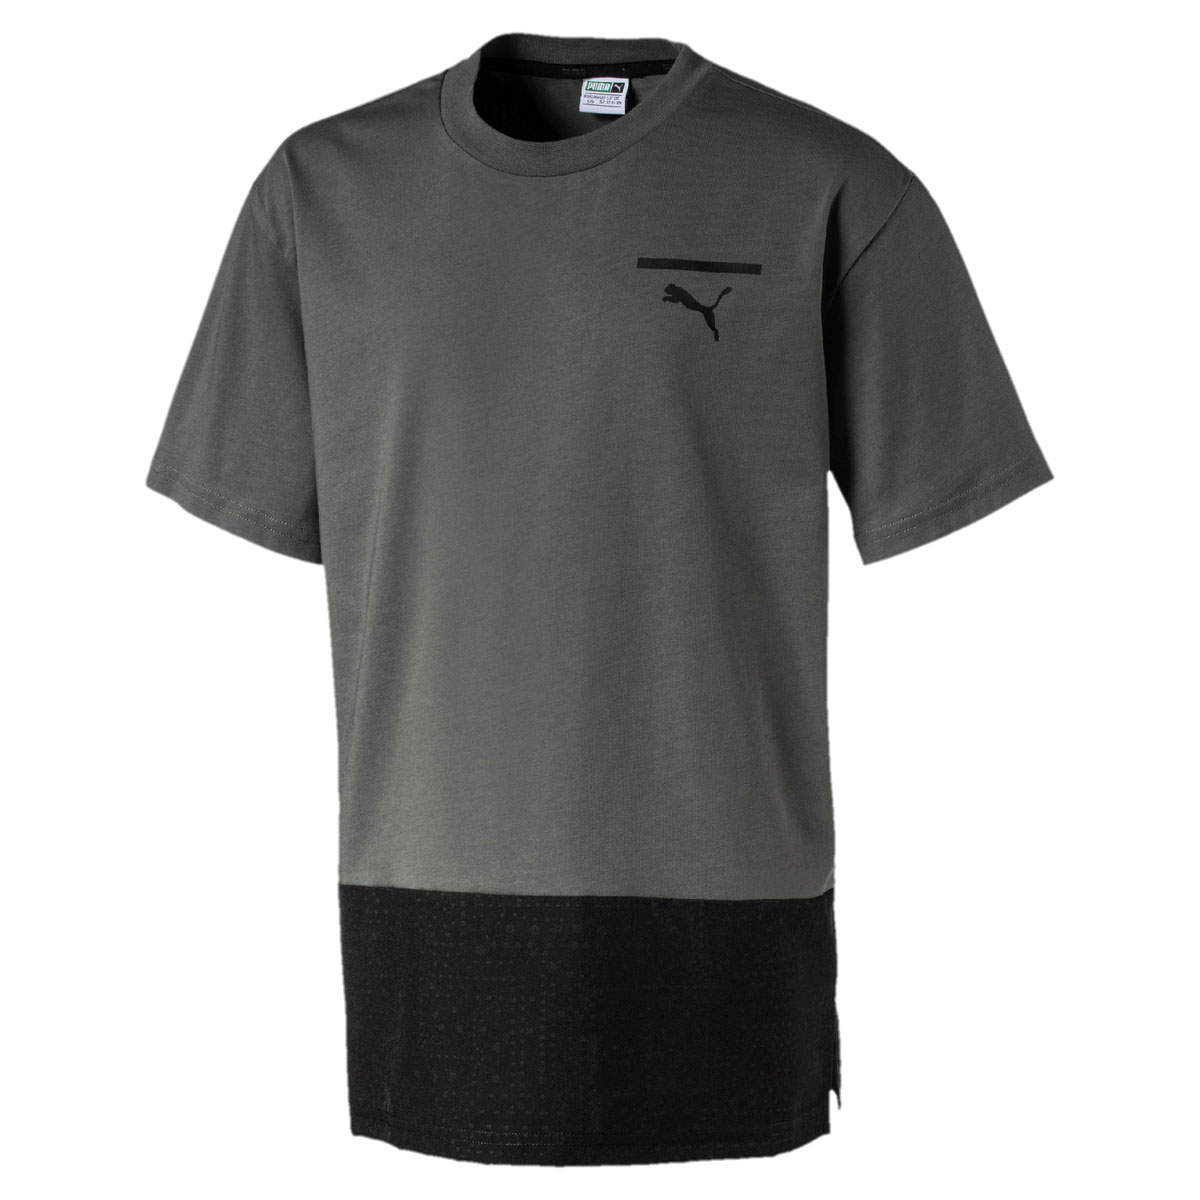 Футболка PUMA Pace Tee футболка мужская puma arsenal fc fan cat tee цвет синий 75266202 размер xxl 52 54